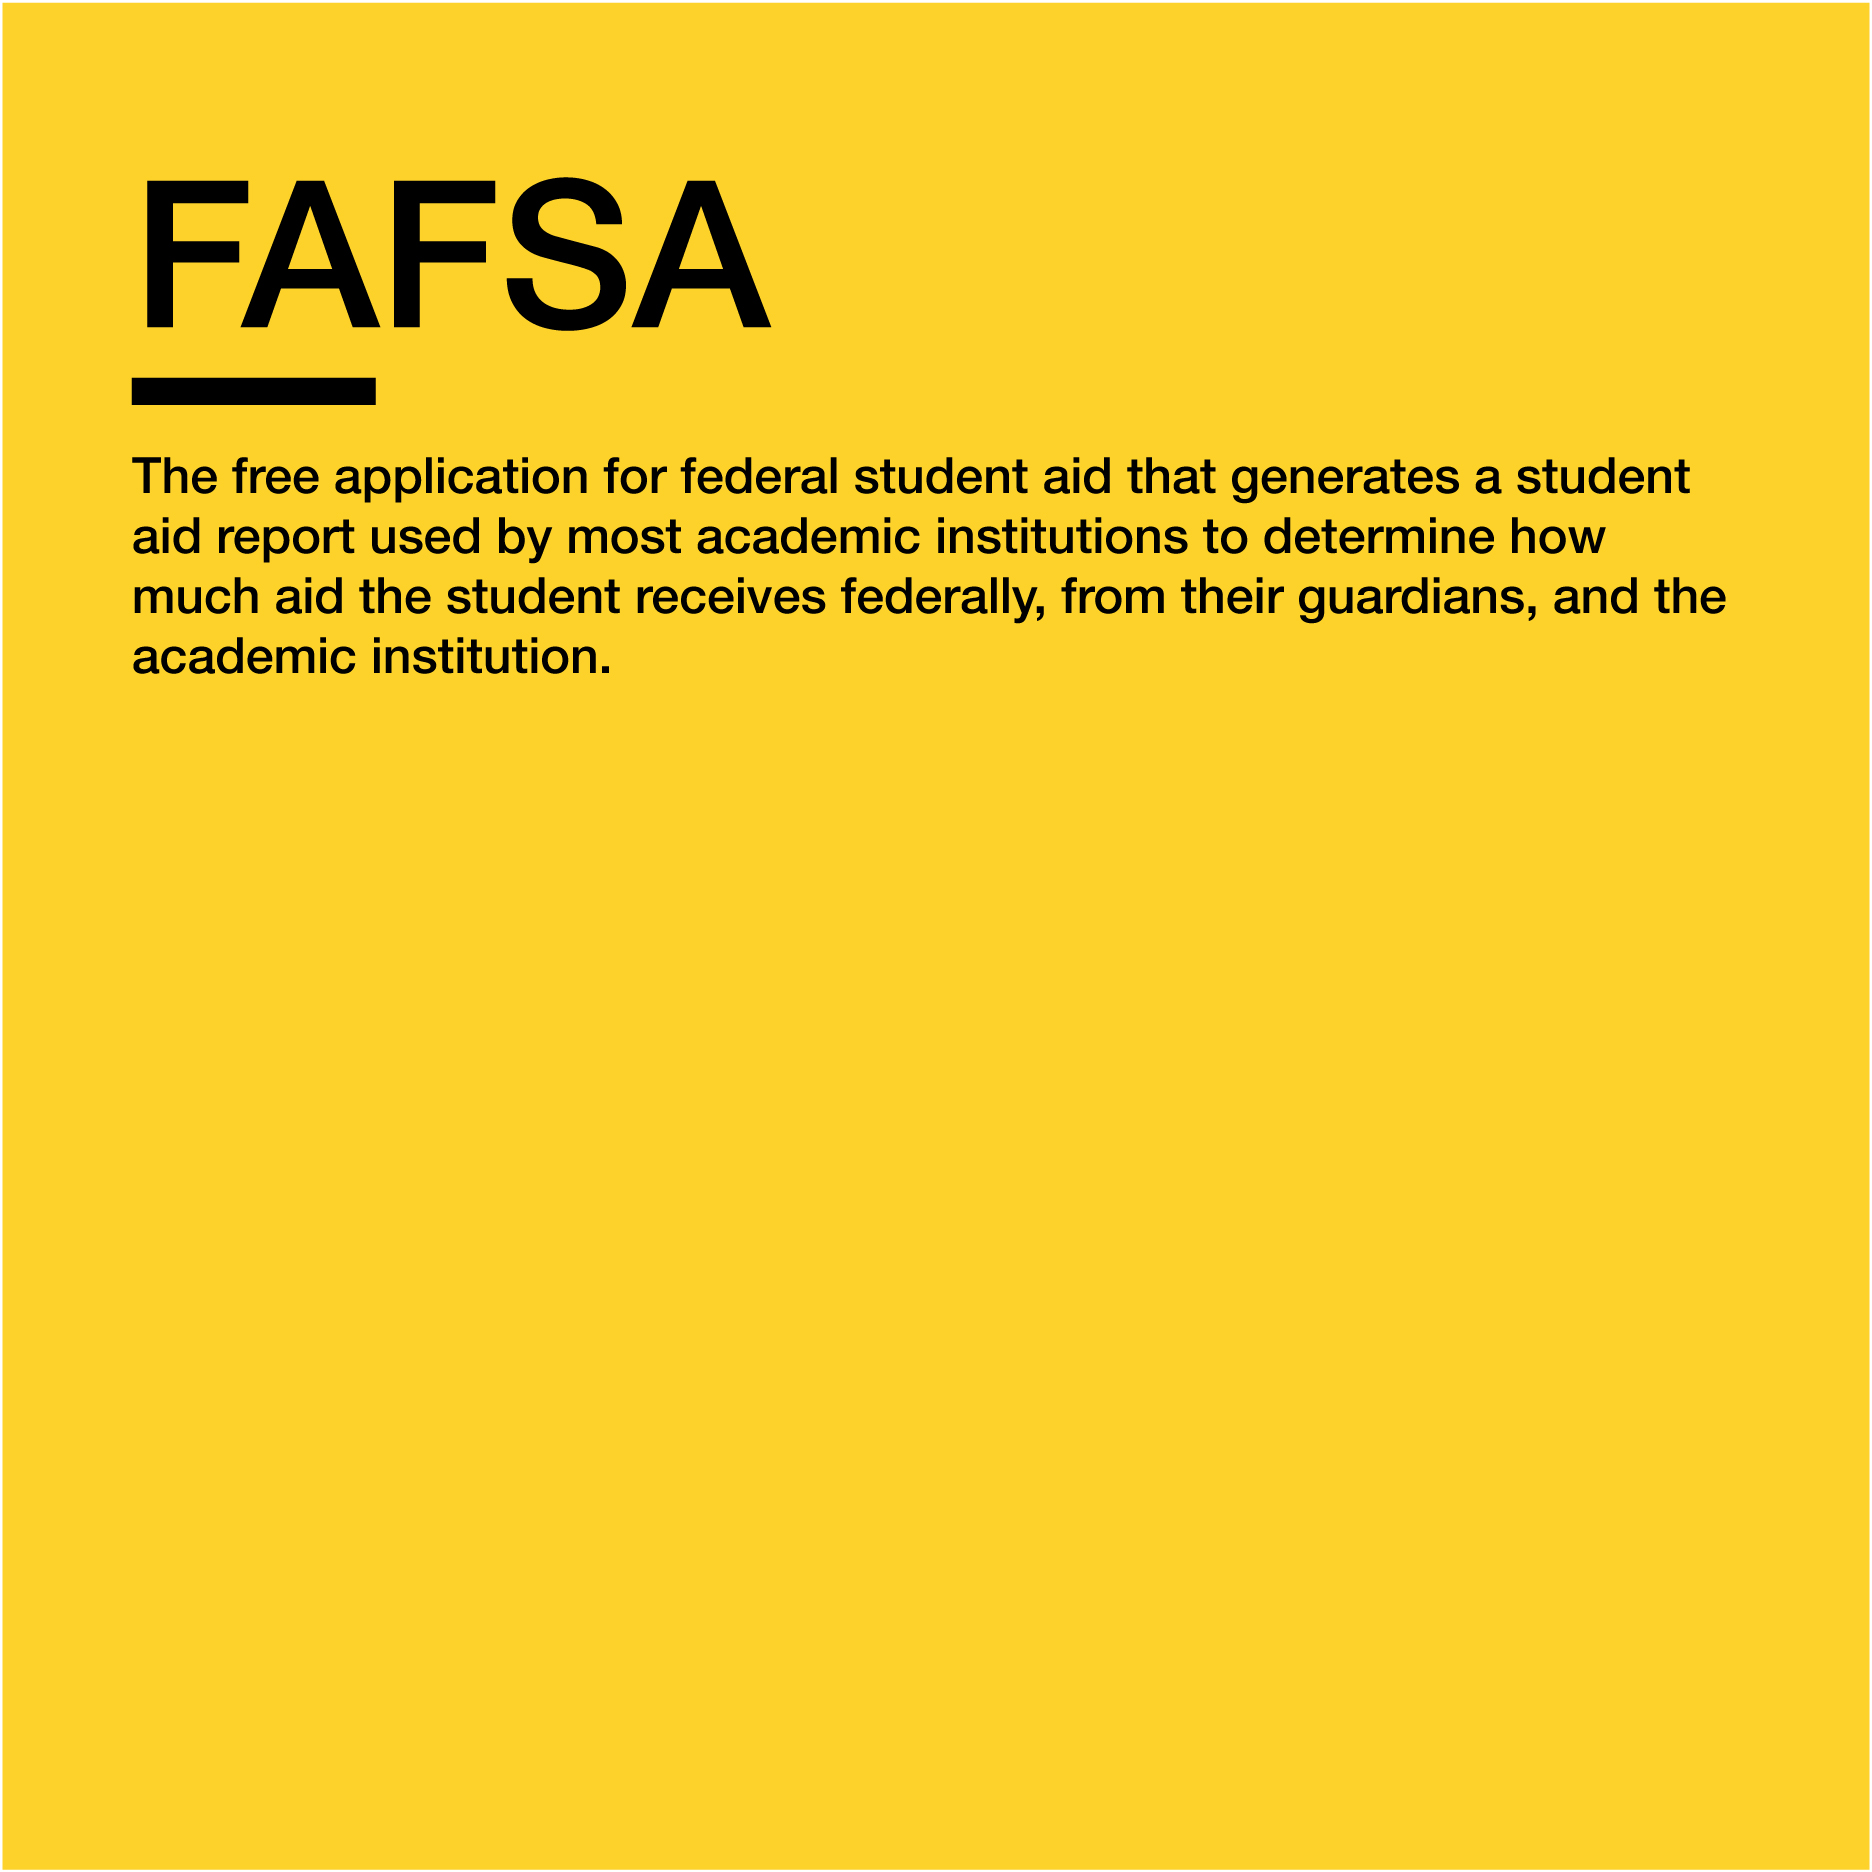 More Info:    https://studentaid.ed.gov/sa/fafsa/filling-out/help